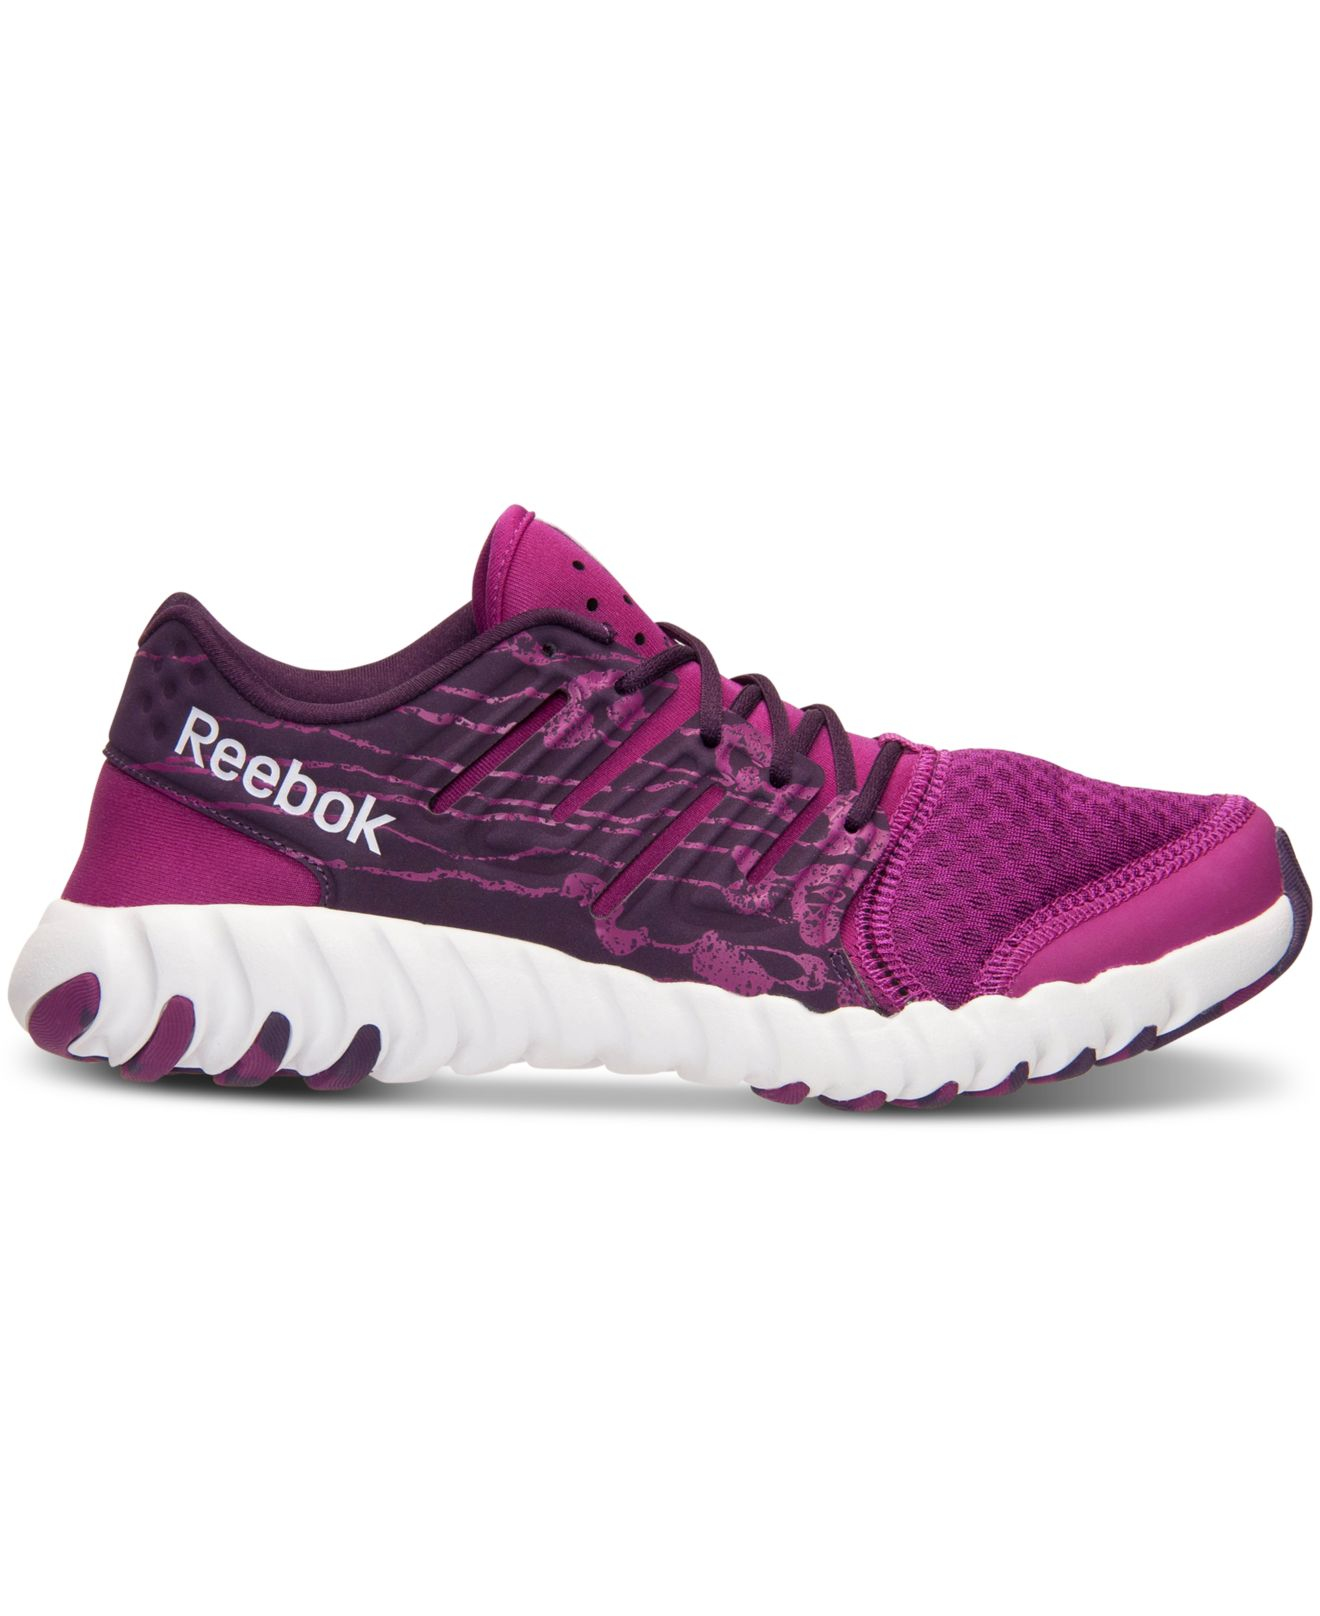 Reebok Purple Womens Shoes